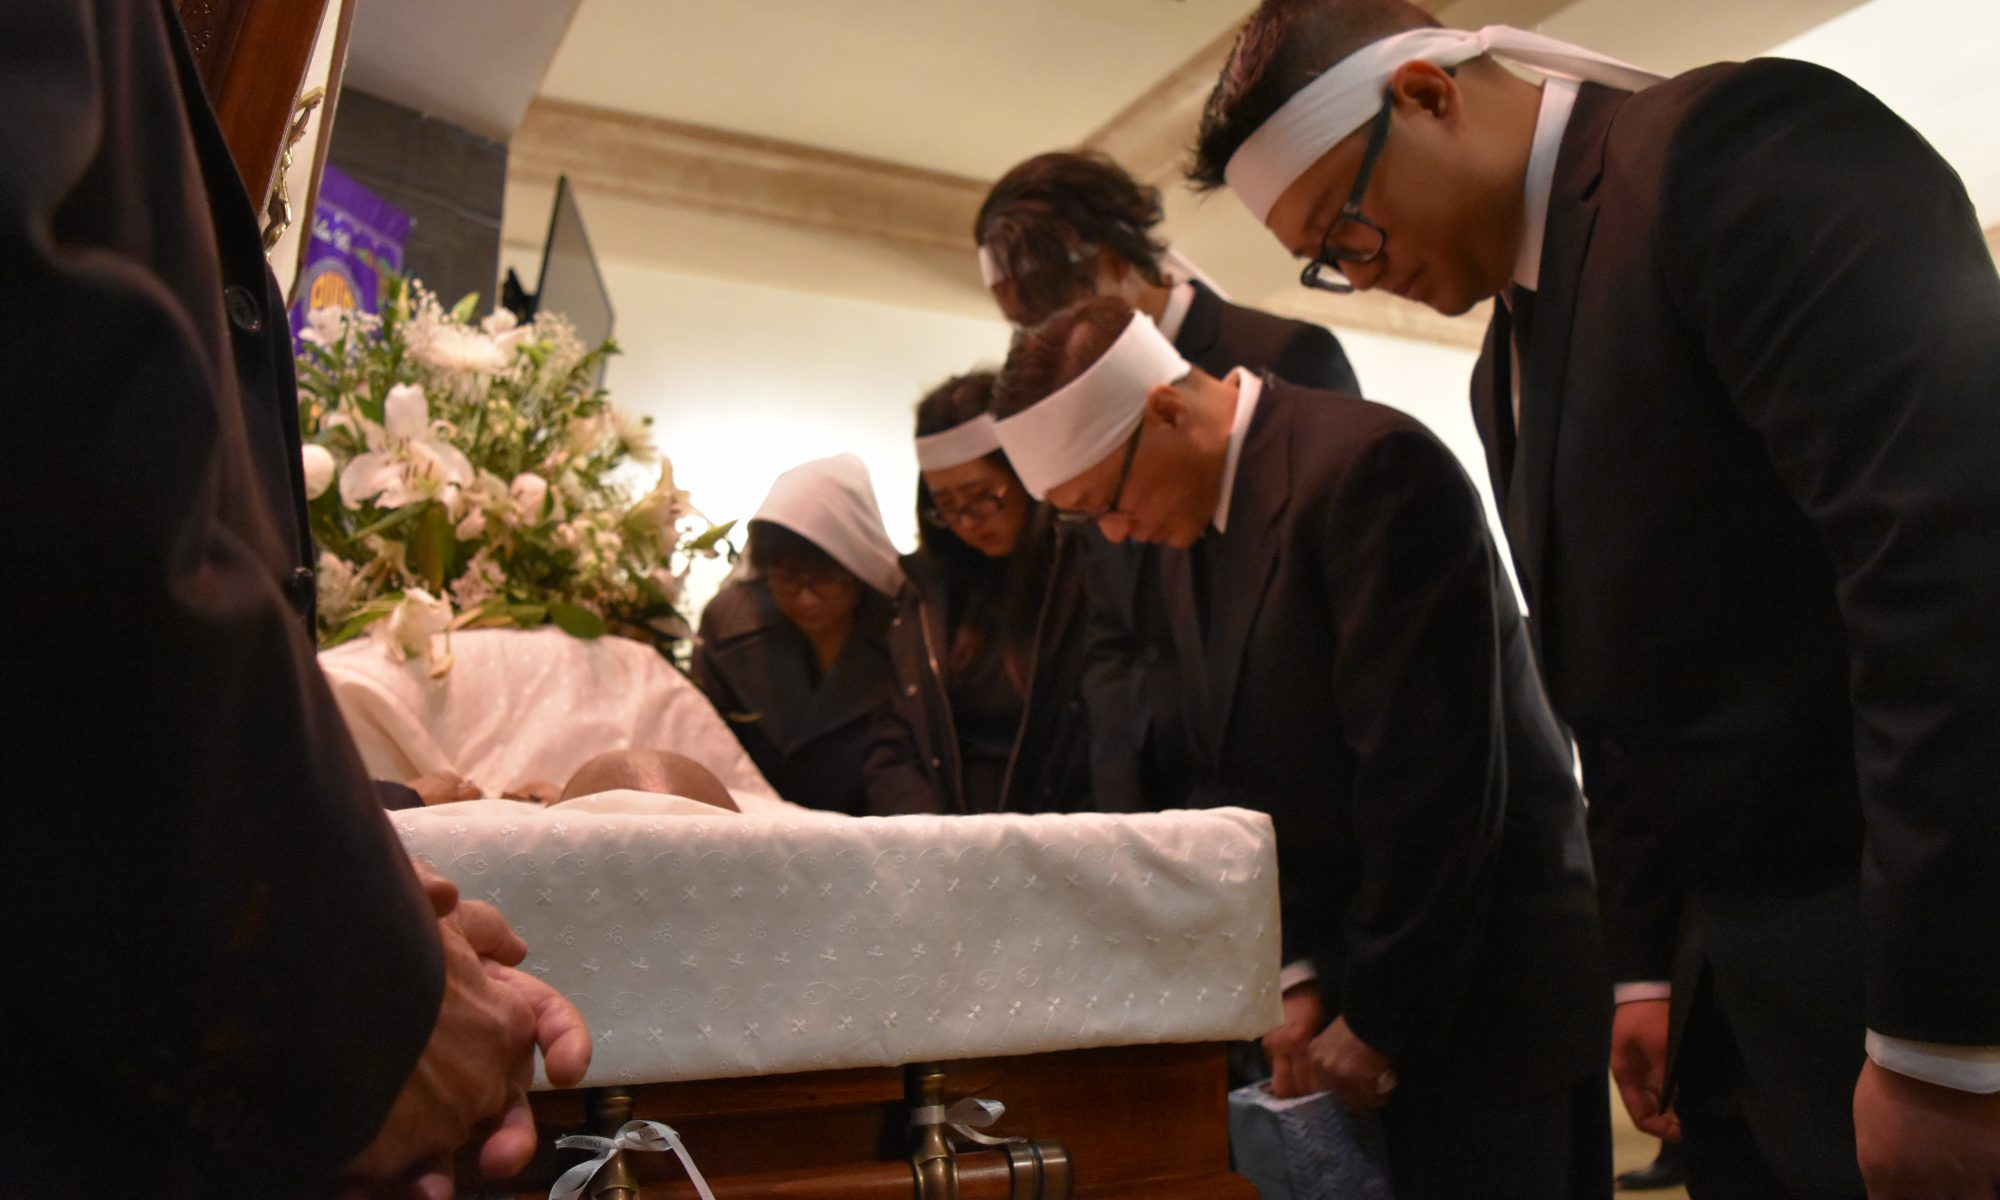 Funeral Picture 4